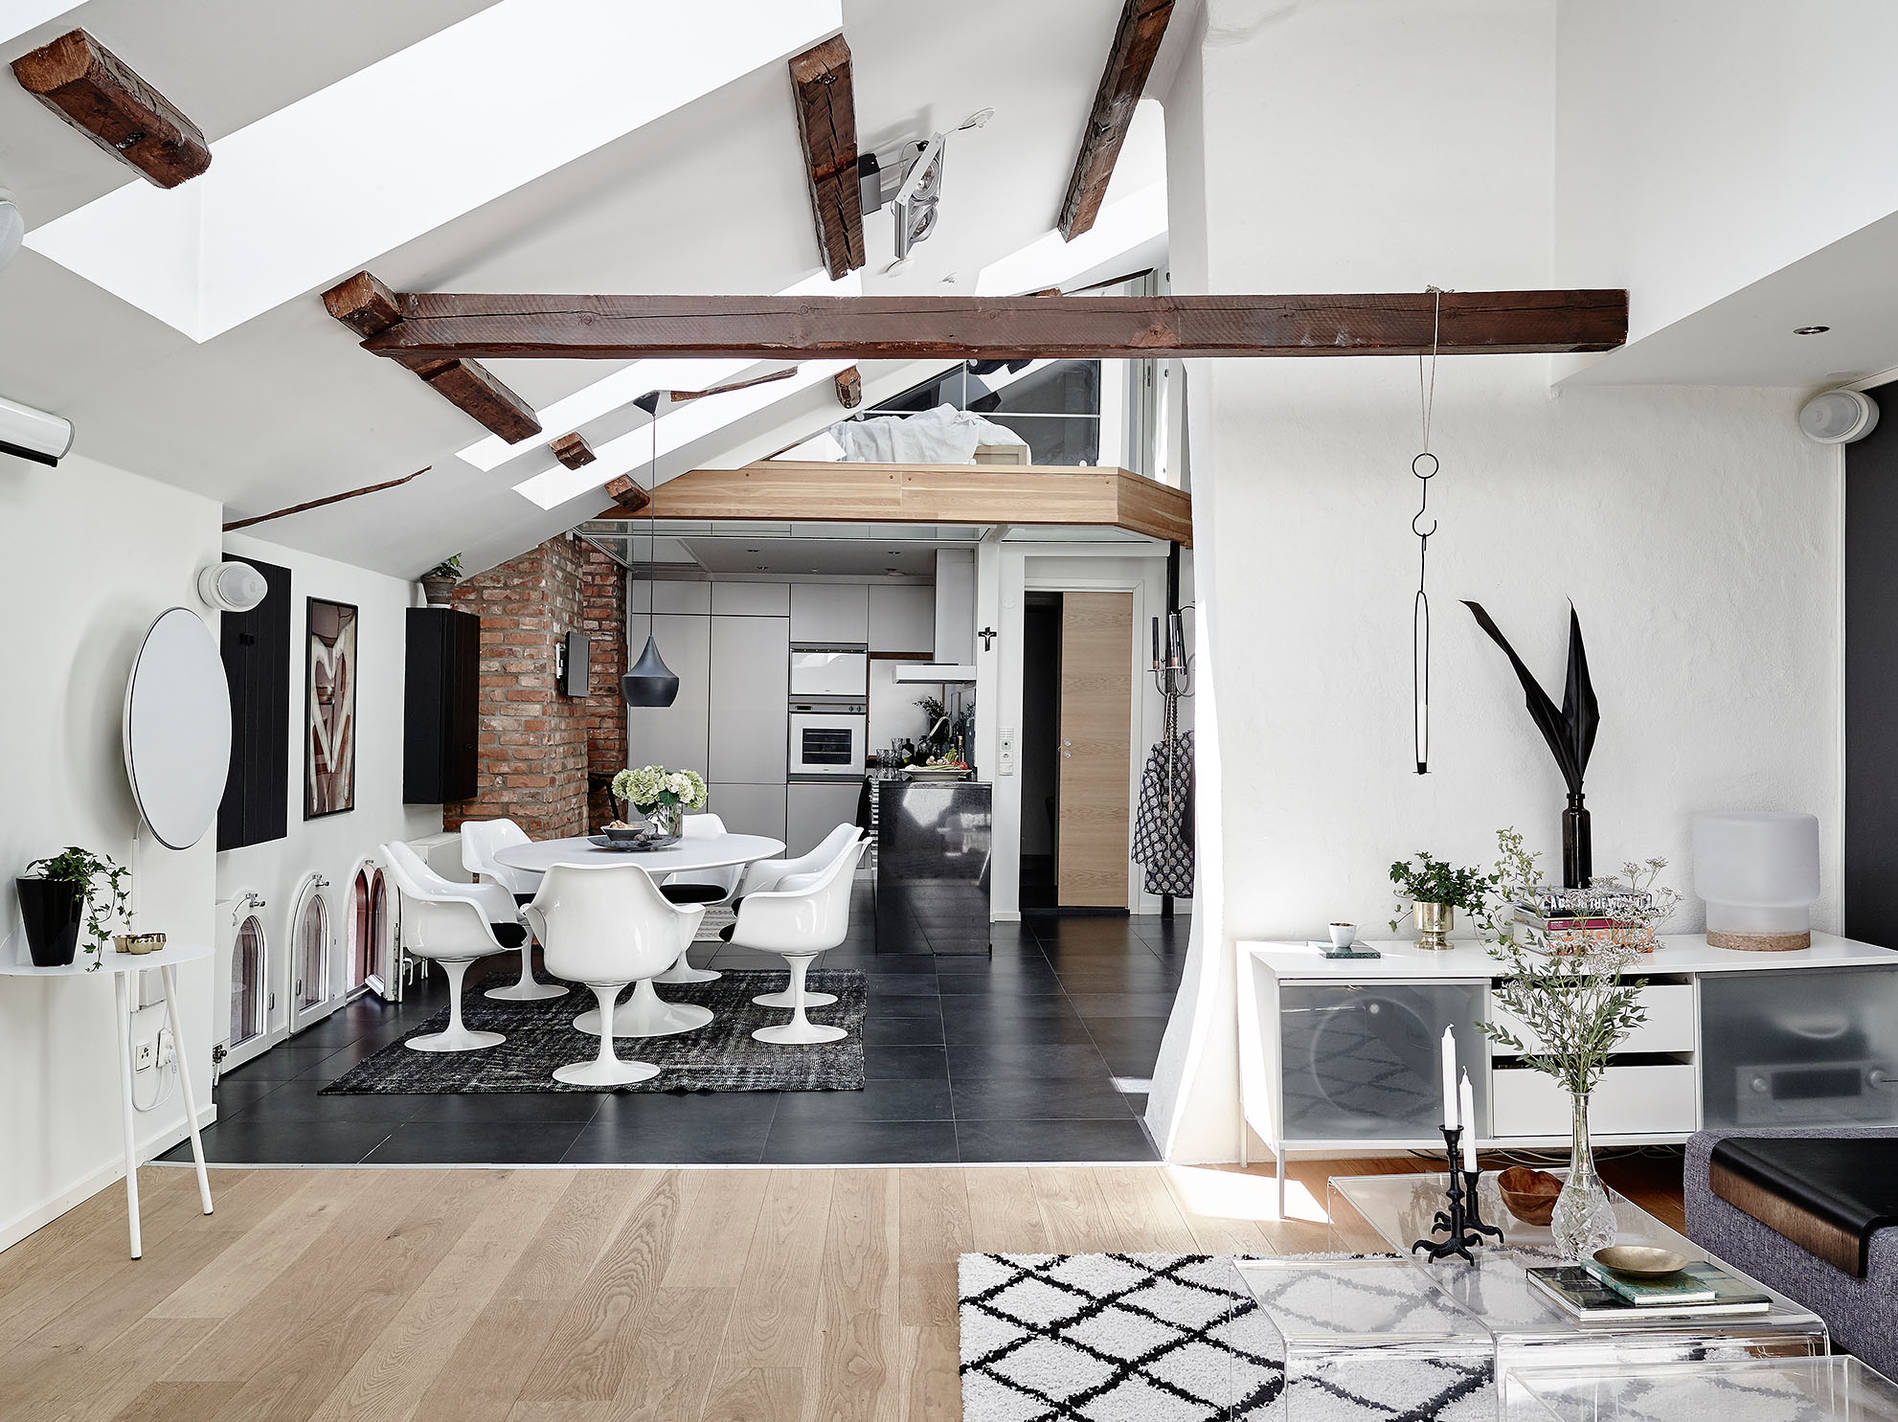 Fantastic attic apartment for a dreamy Monday